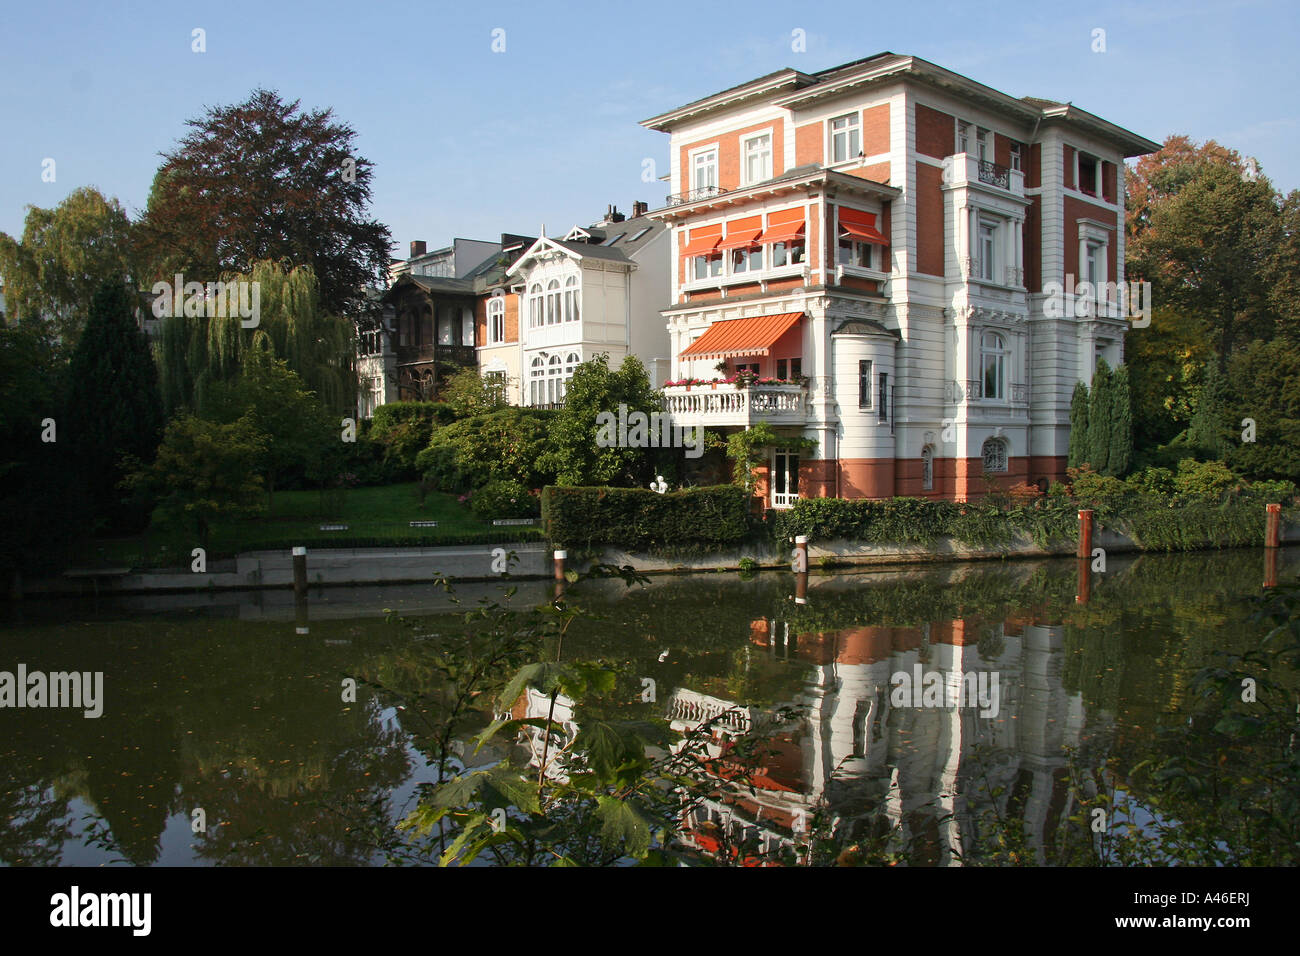 Stock photo hamburg germany riverside new - A Riverside Villa In Hamburg Germany